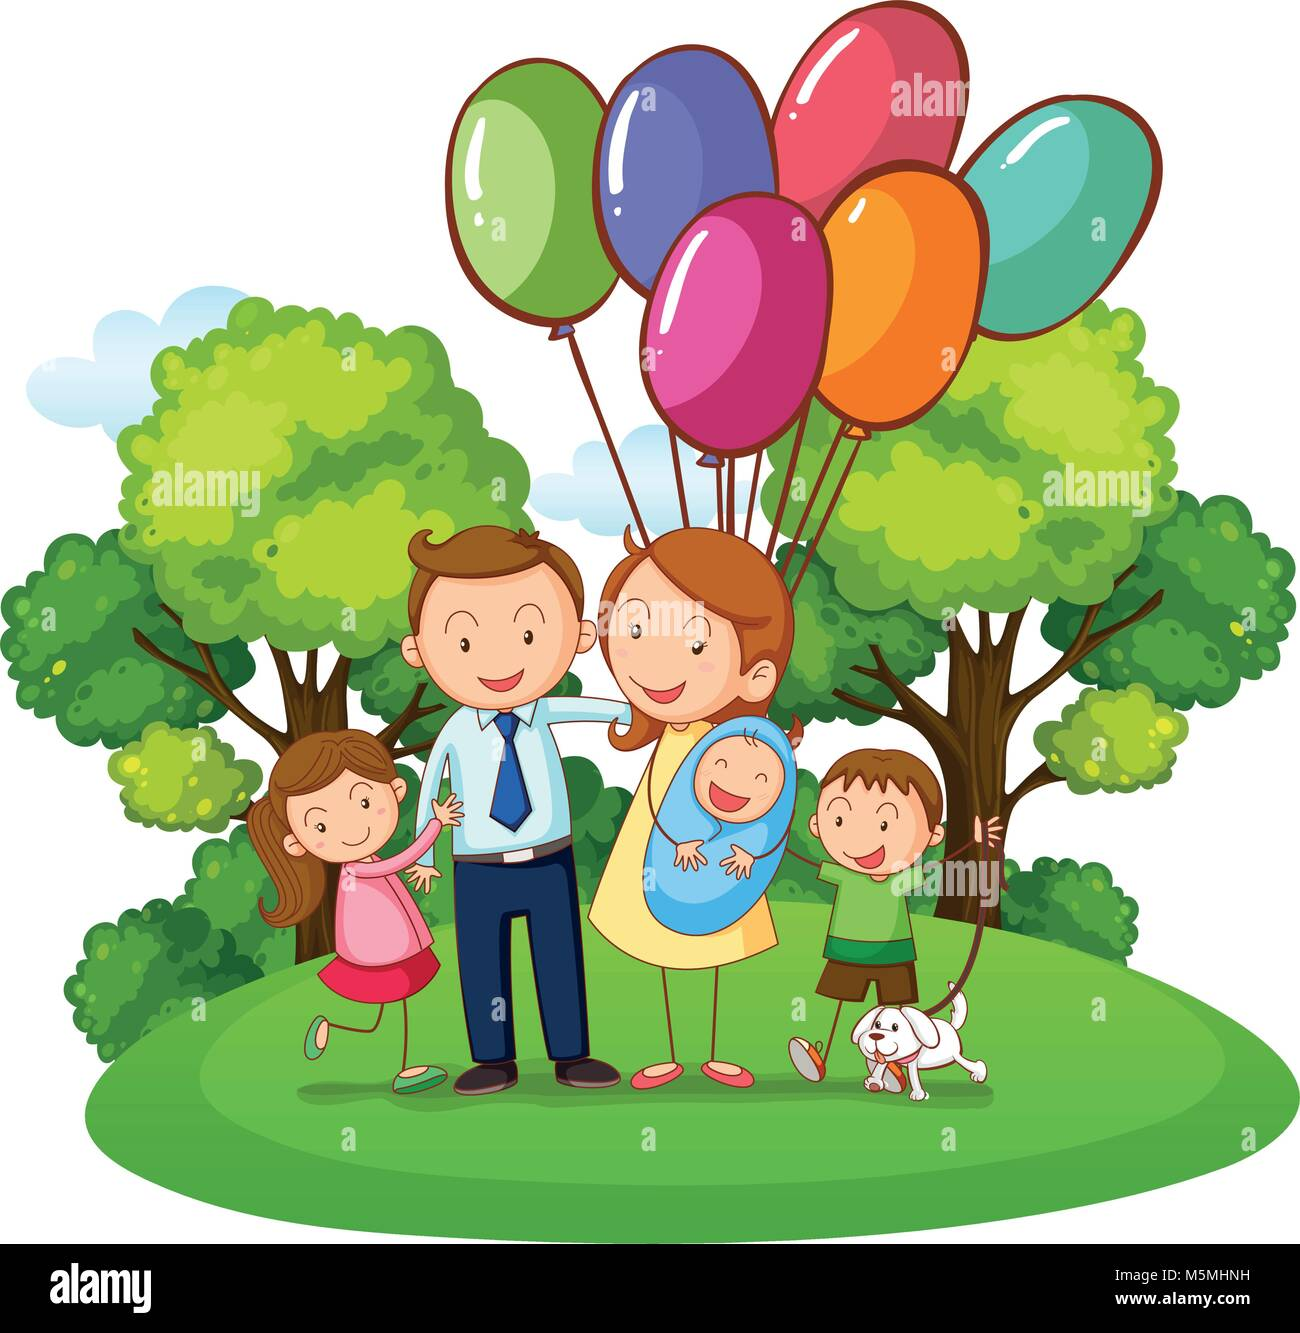 Family with three kids in the park illustration - Stock Vector